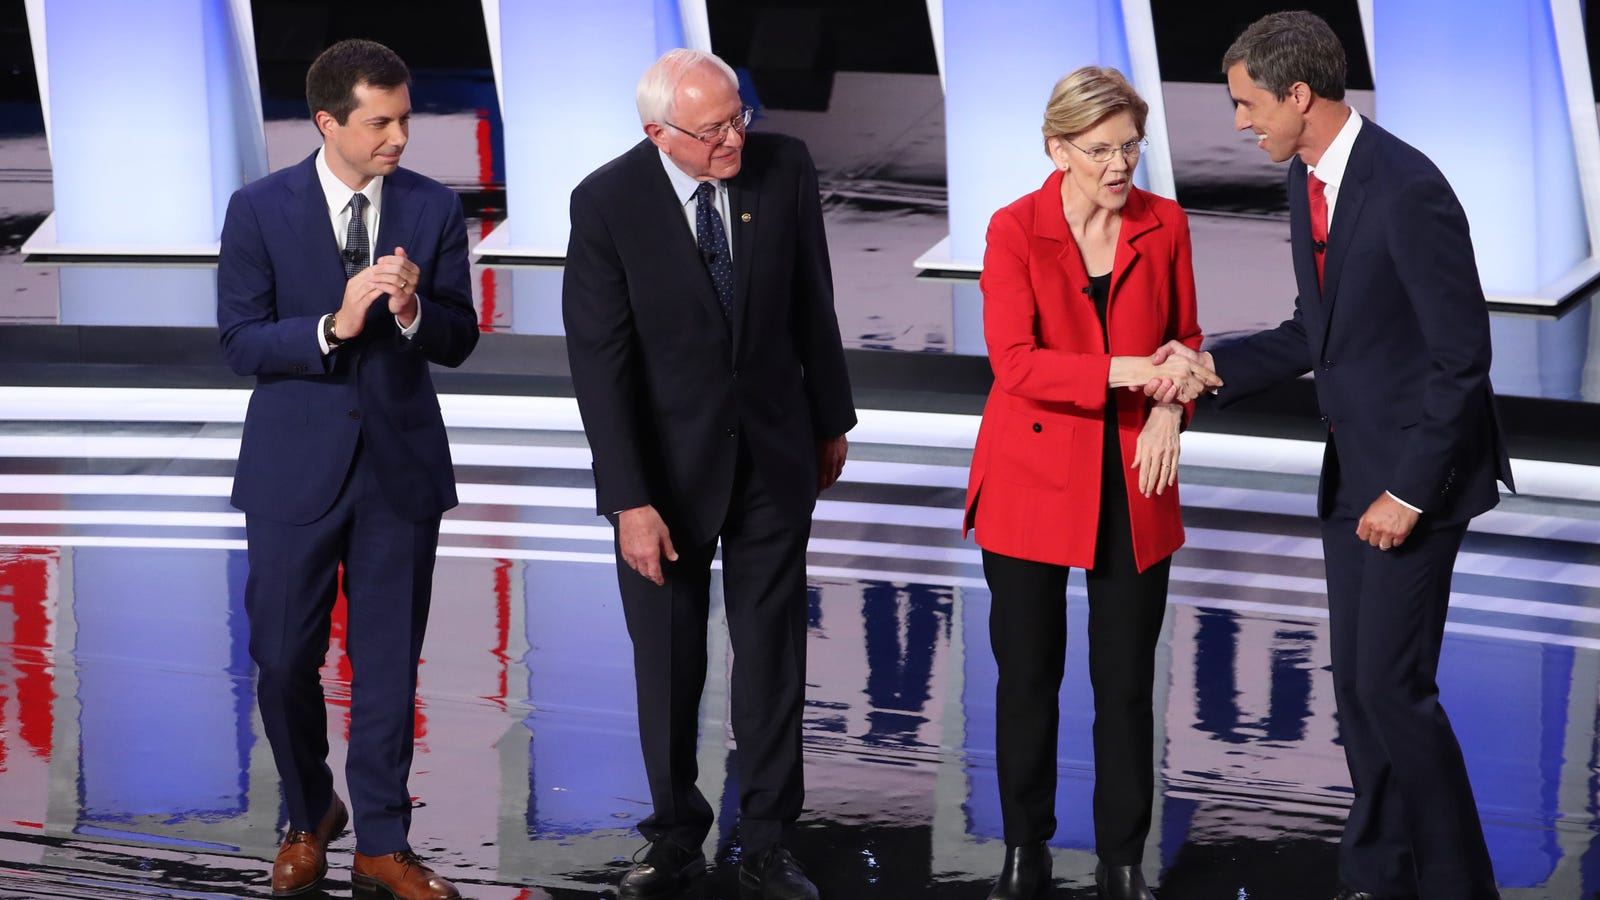 How to Stream Tonight's 2020 Democratic Candidate Town Hall on Climate Change